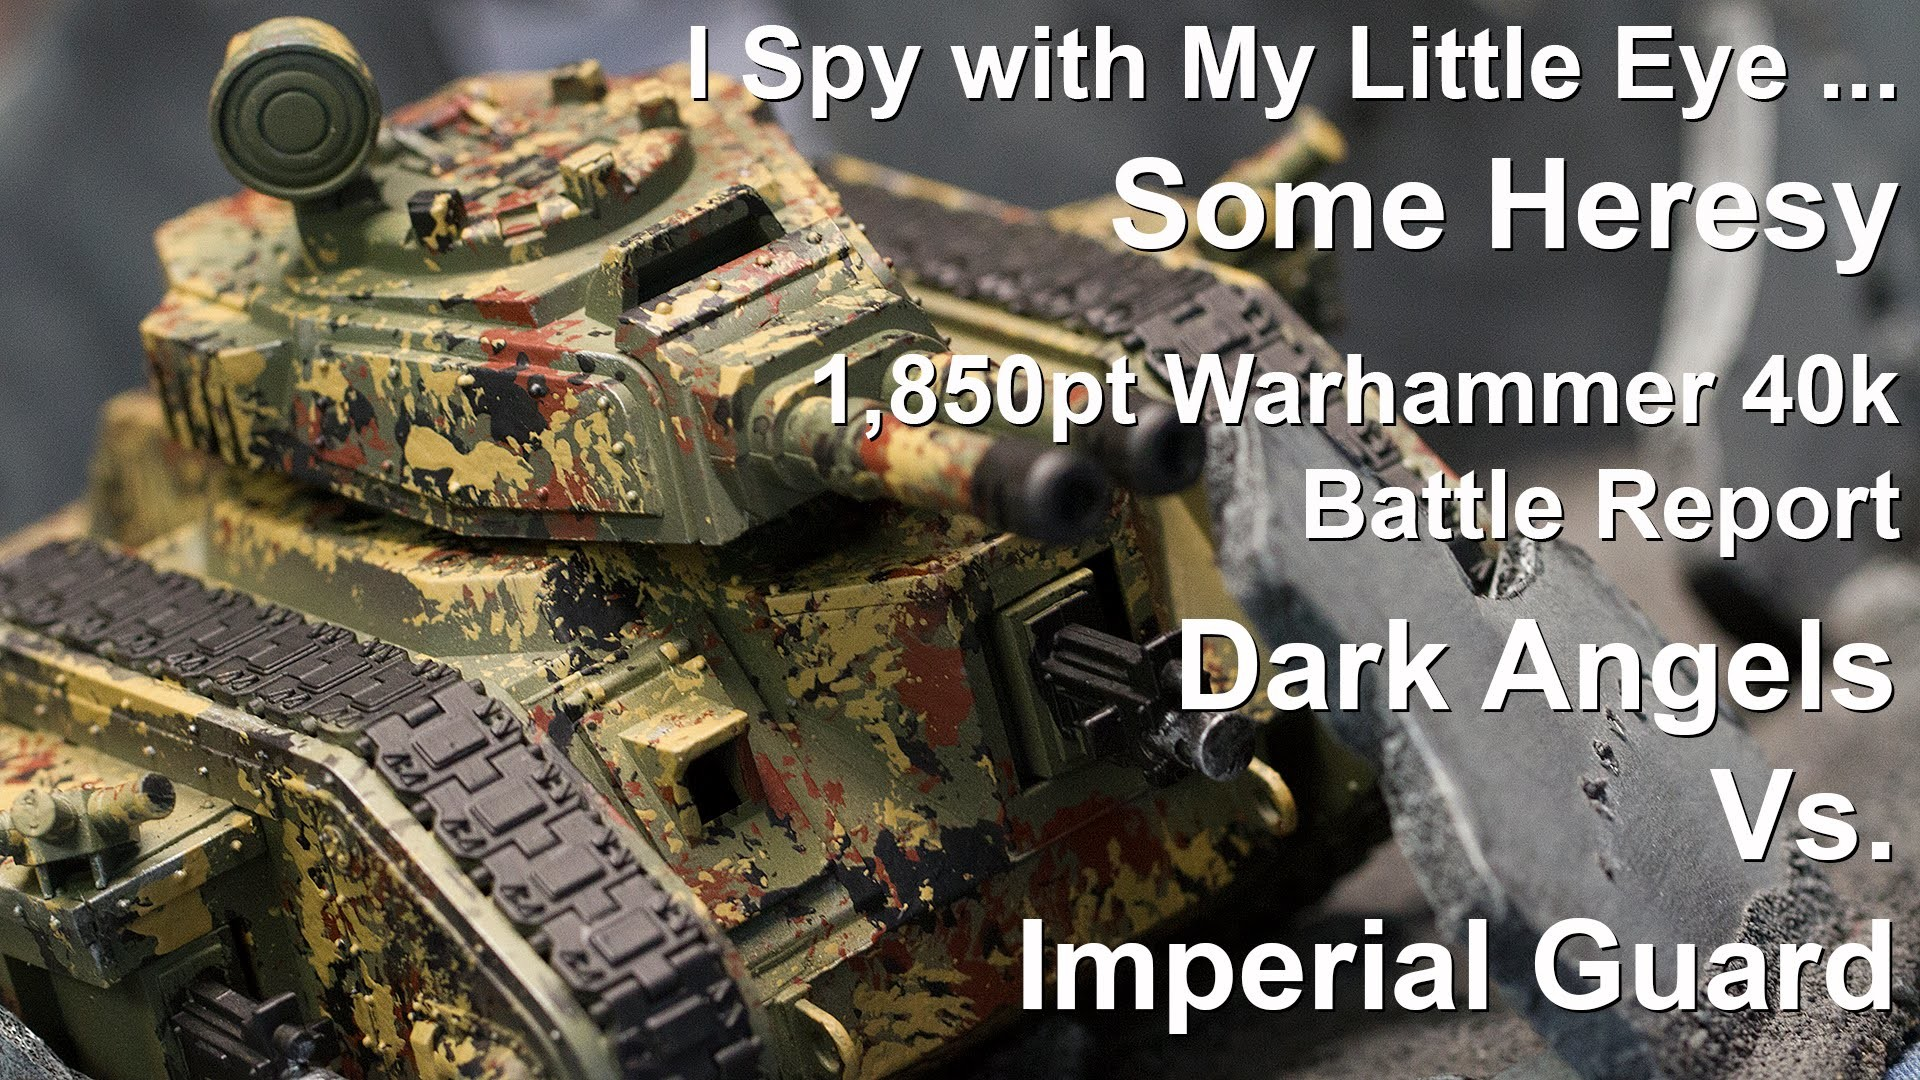 1920x1080 Heresy - 1,850pt Warhammer 40K Battle Report - Imperial Guard Vs. Dark  Angels - YouTube